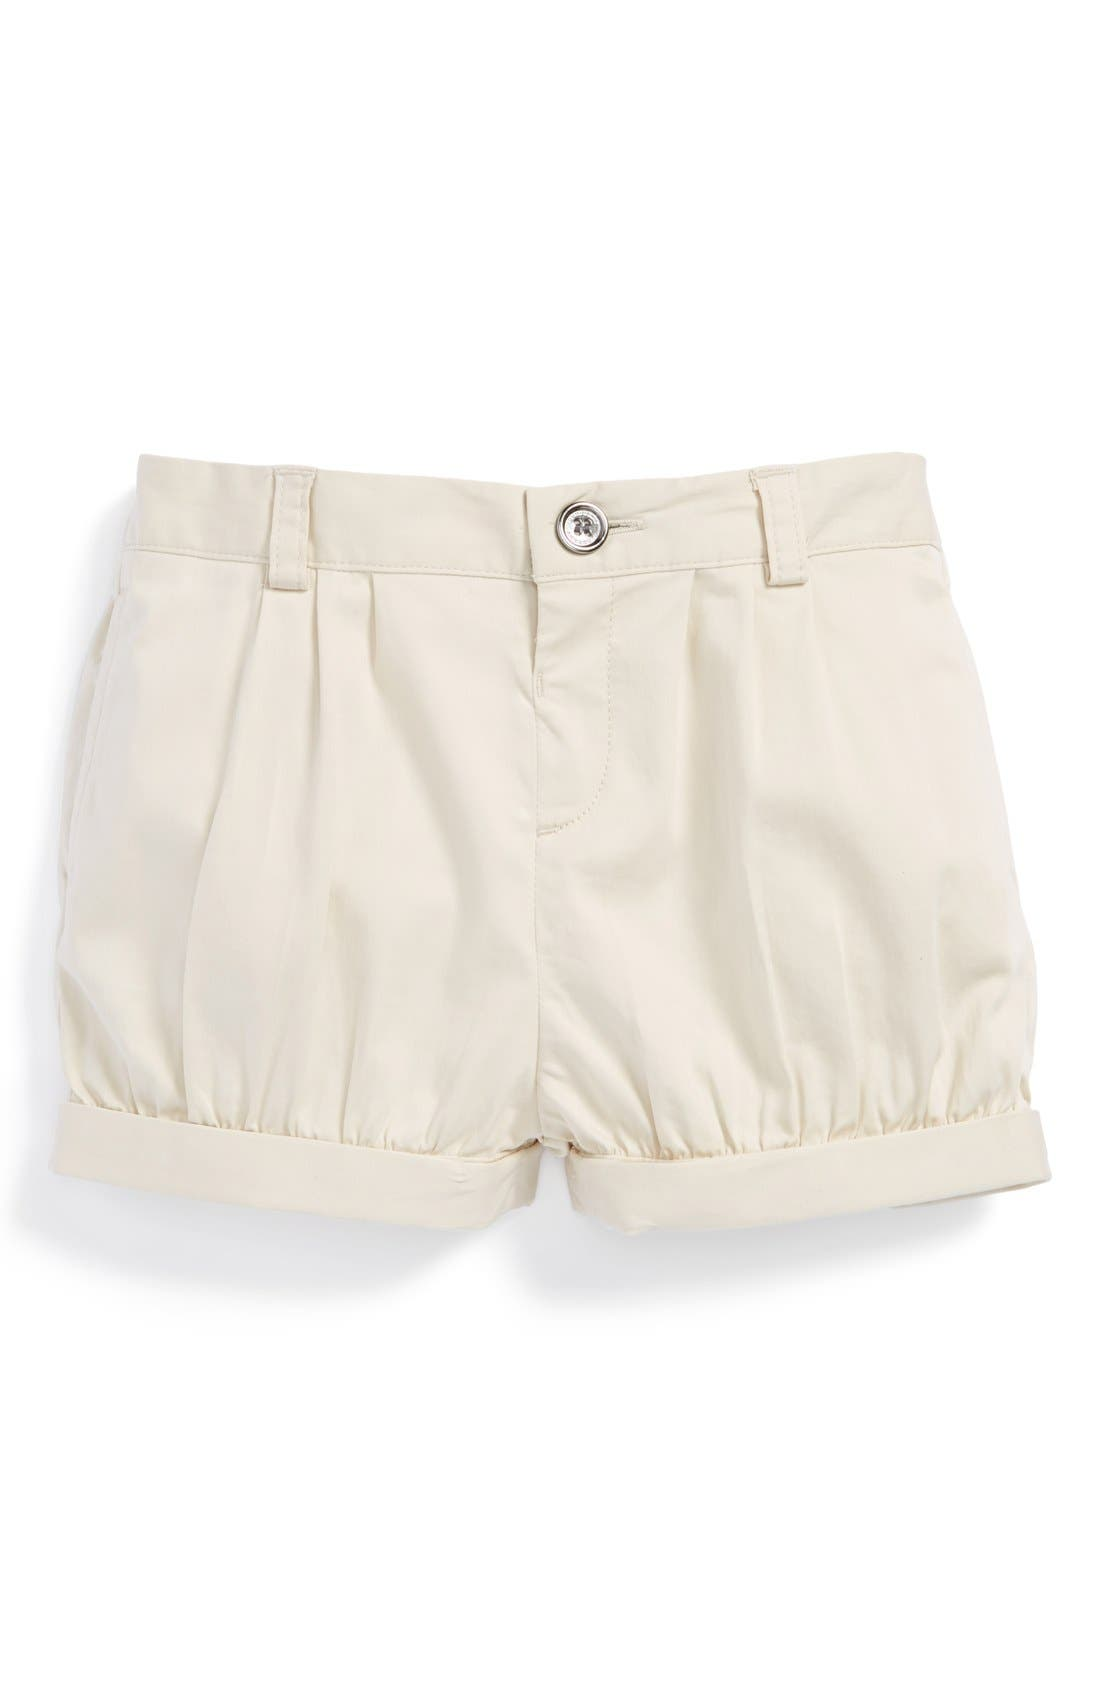 Alternate Image 1 Selected - Burberry 'Shauna' Roll Cuff Shorts (Baby Girls)